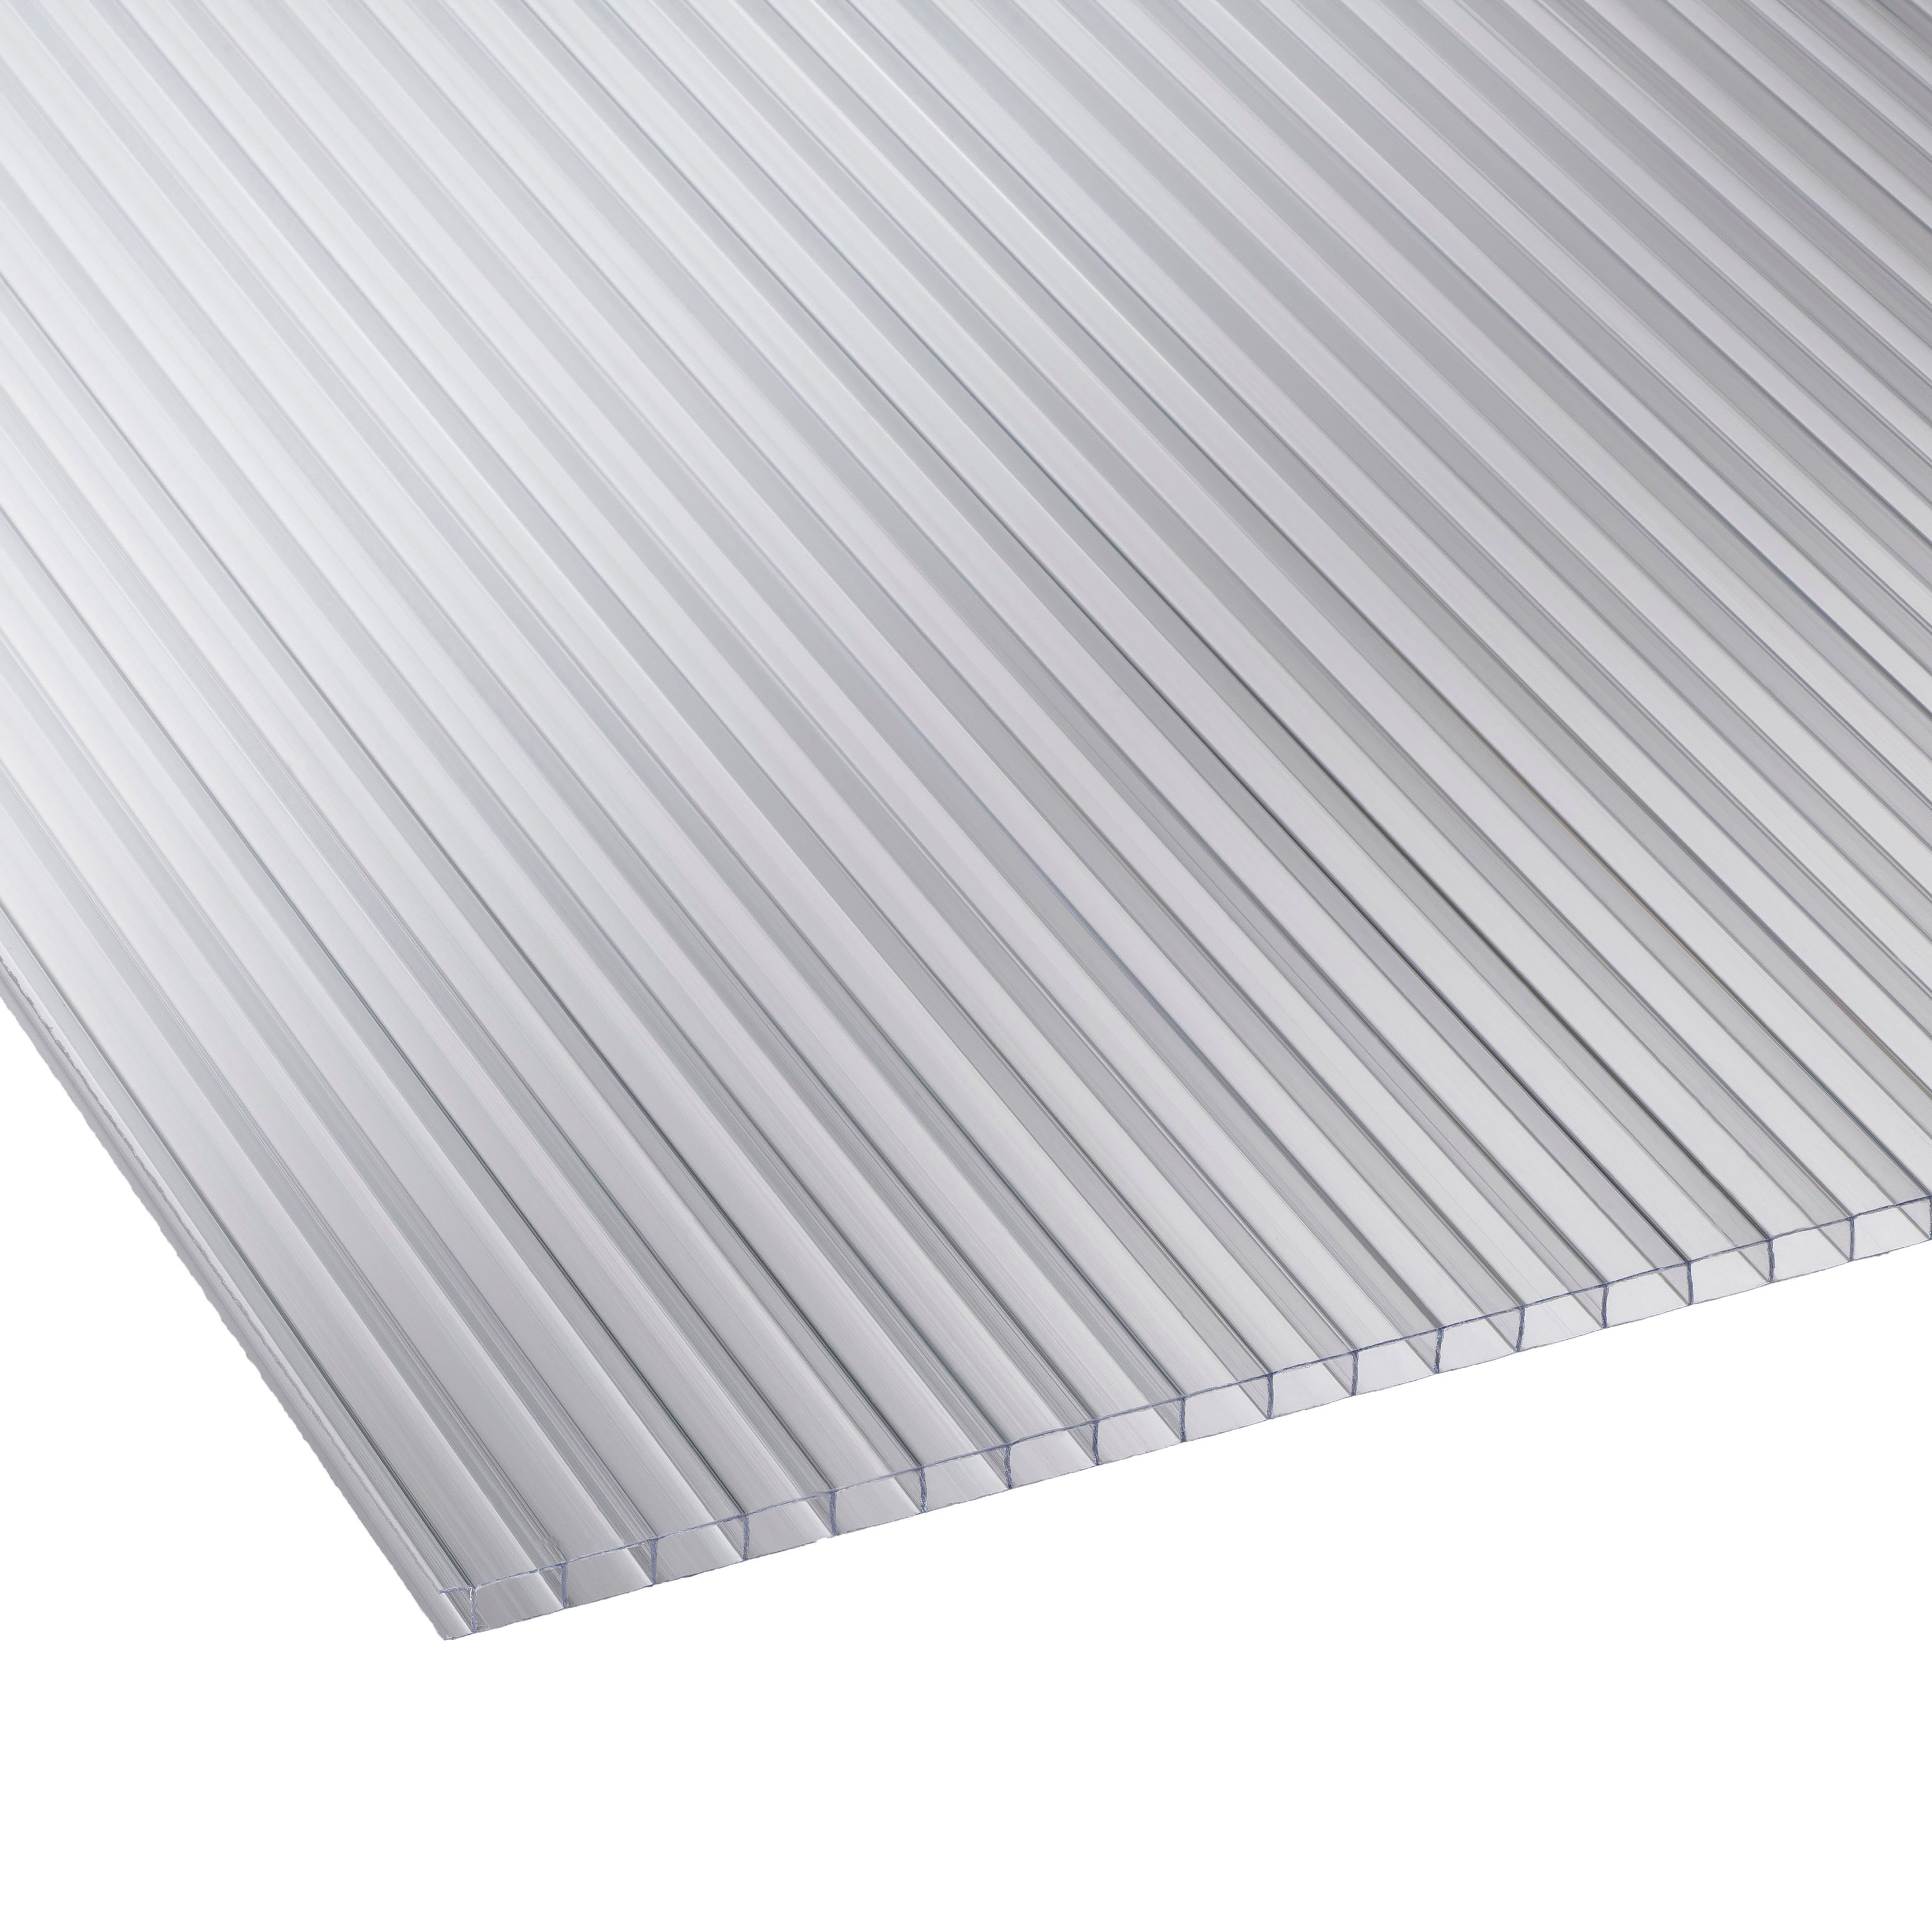 Clear Mutilwall Polycarbonate Horticultural Glazing Sheet 1220mm X 610mm, Pack Of 10